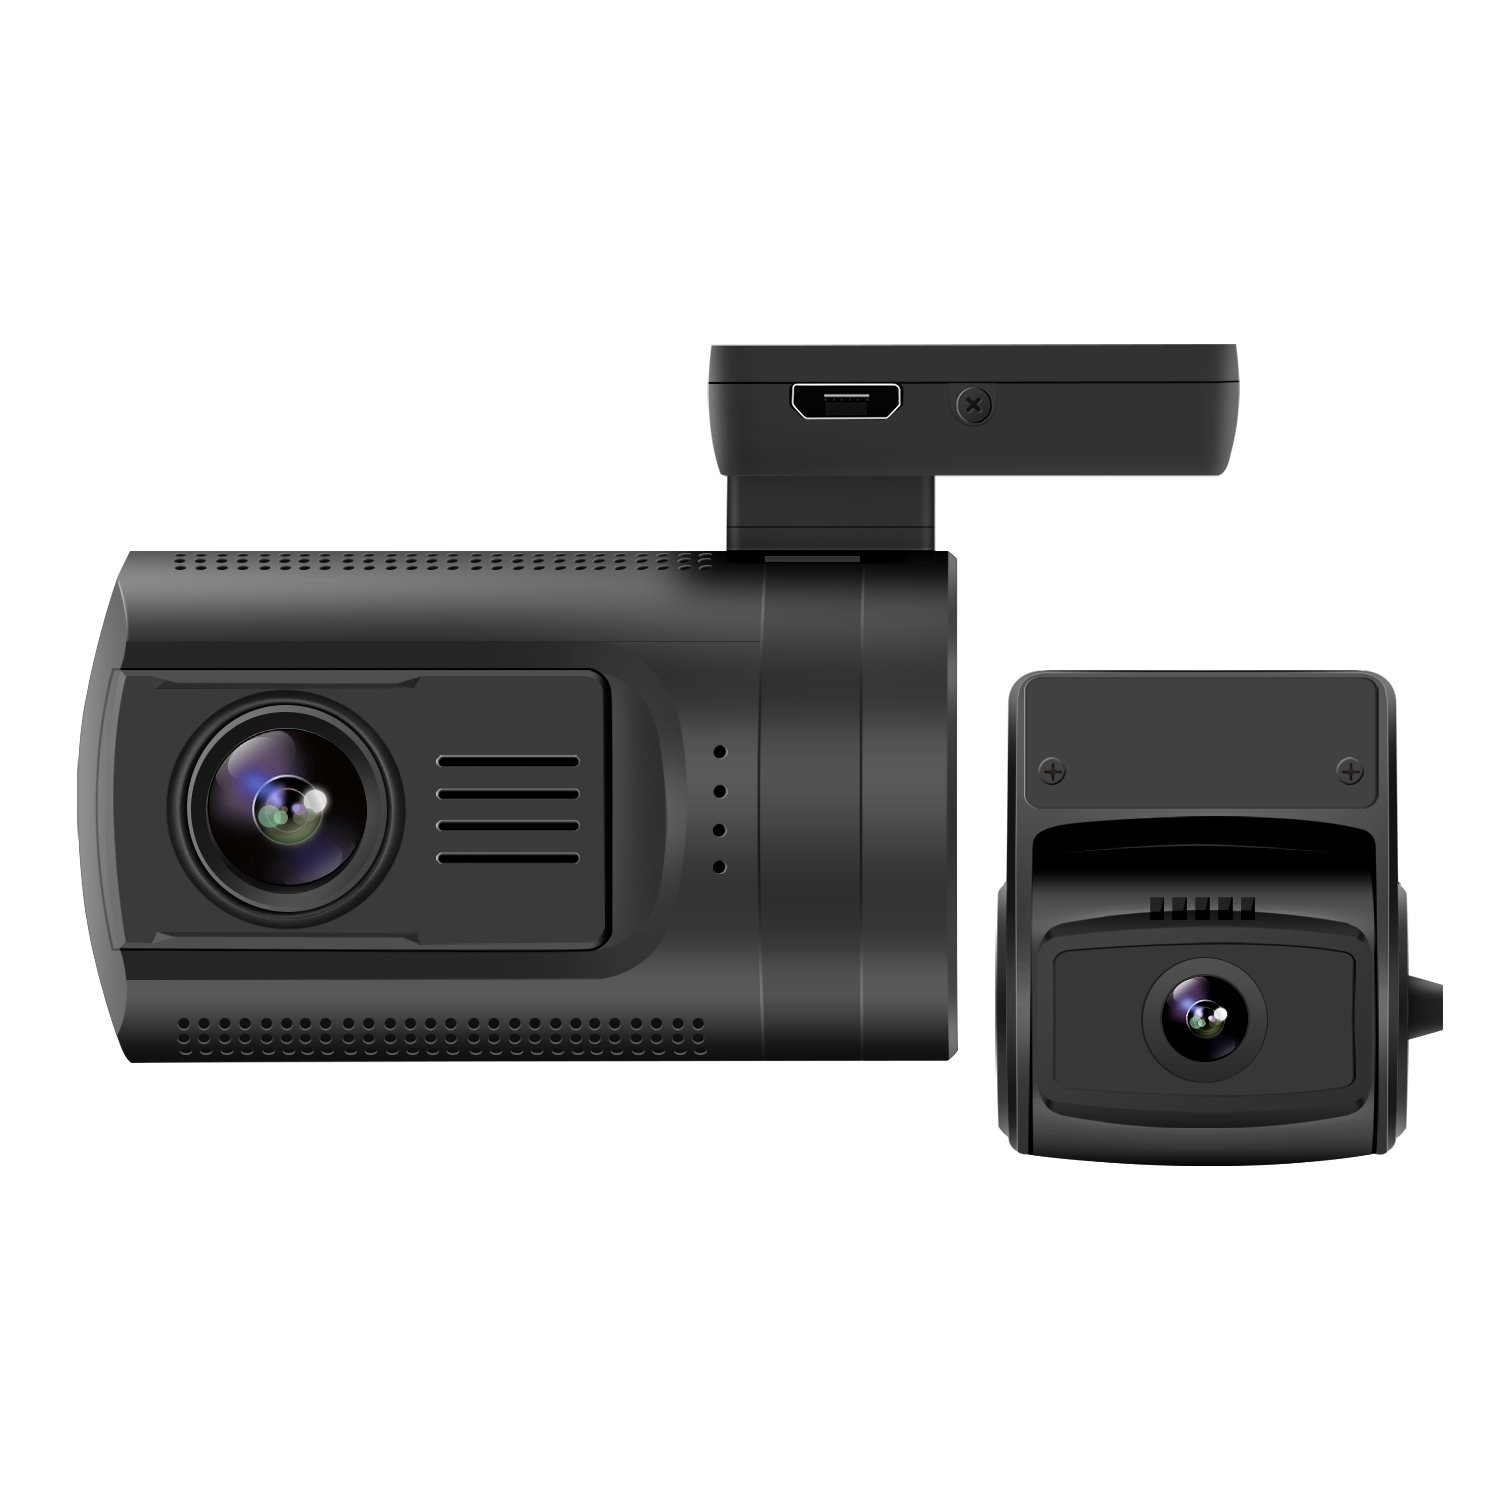 zerogogo Dual Dash Cam 1080P FHD Mini 0906 Dashboard Camera Recorder with GPS, Sony Super Night Vision IMX291 IMX323 Exmor Sensor, 7 Glasses Lens Wide Angle, G-Sensor Dash Cam for Cars (ZE0906) KAILUKE (ShenZhen) Technology Co. Ltd